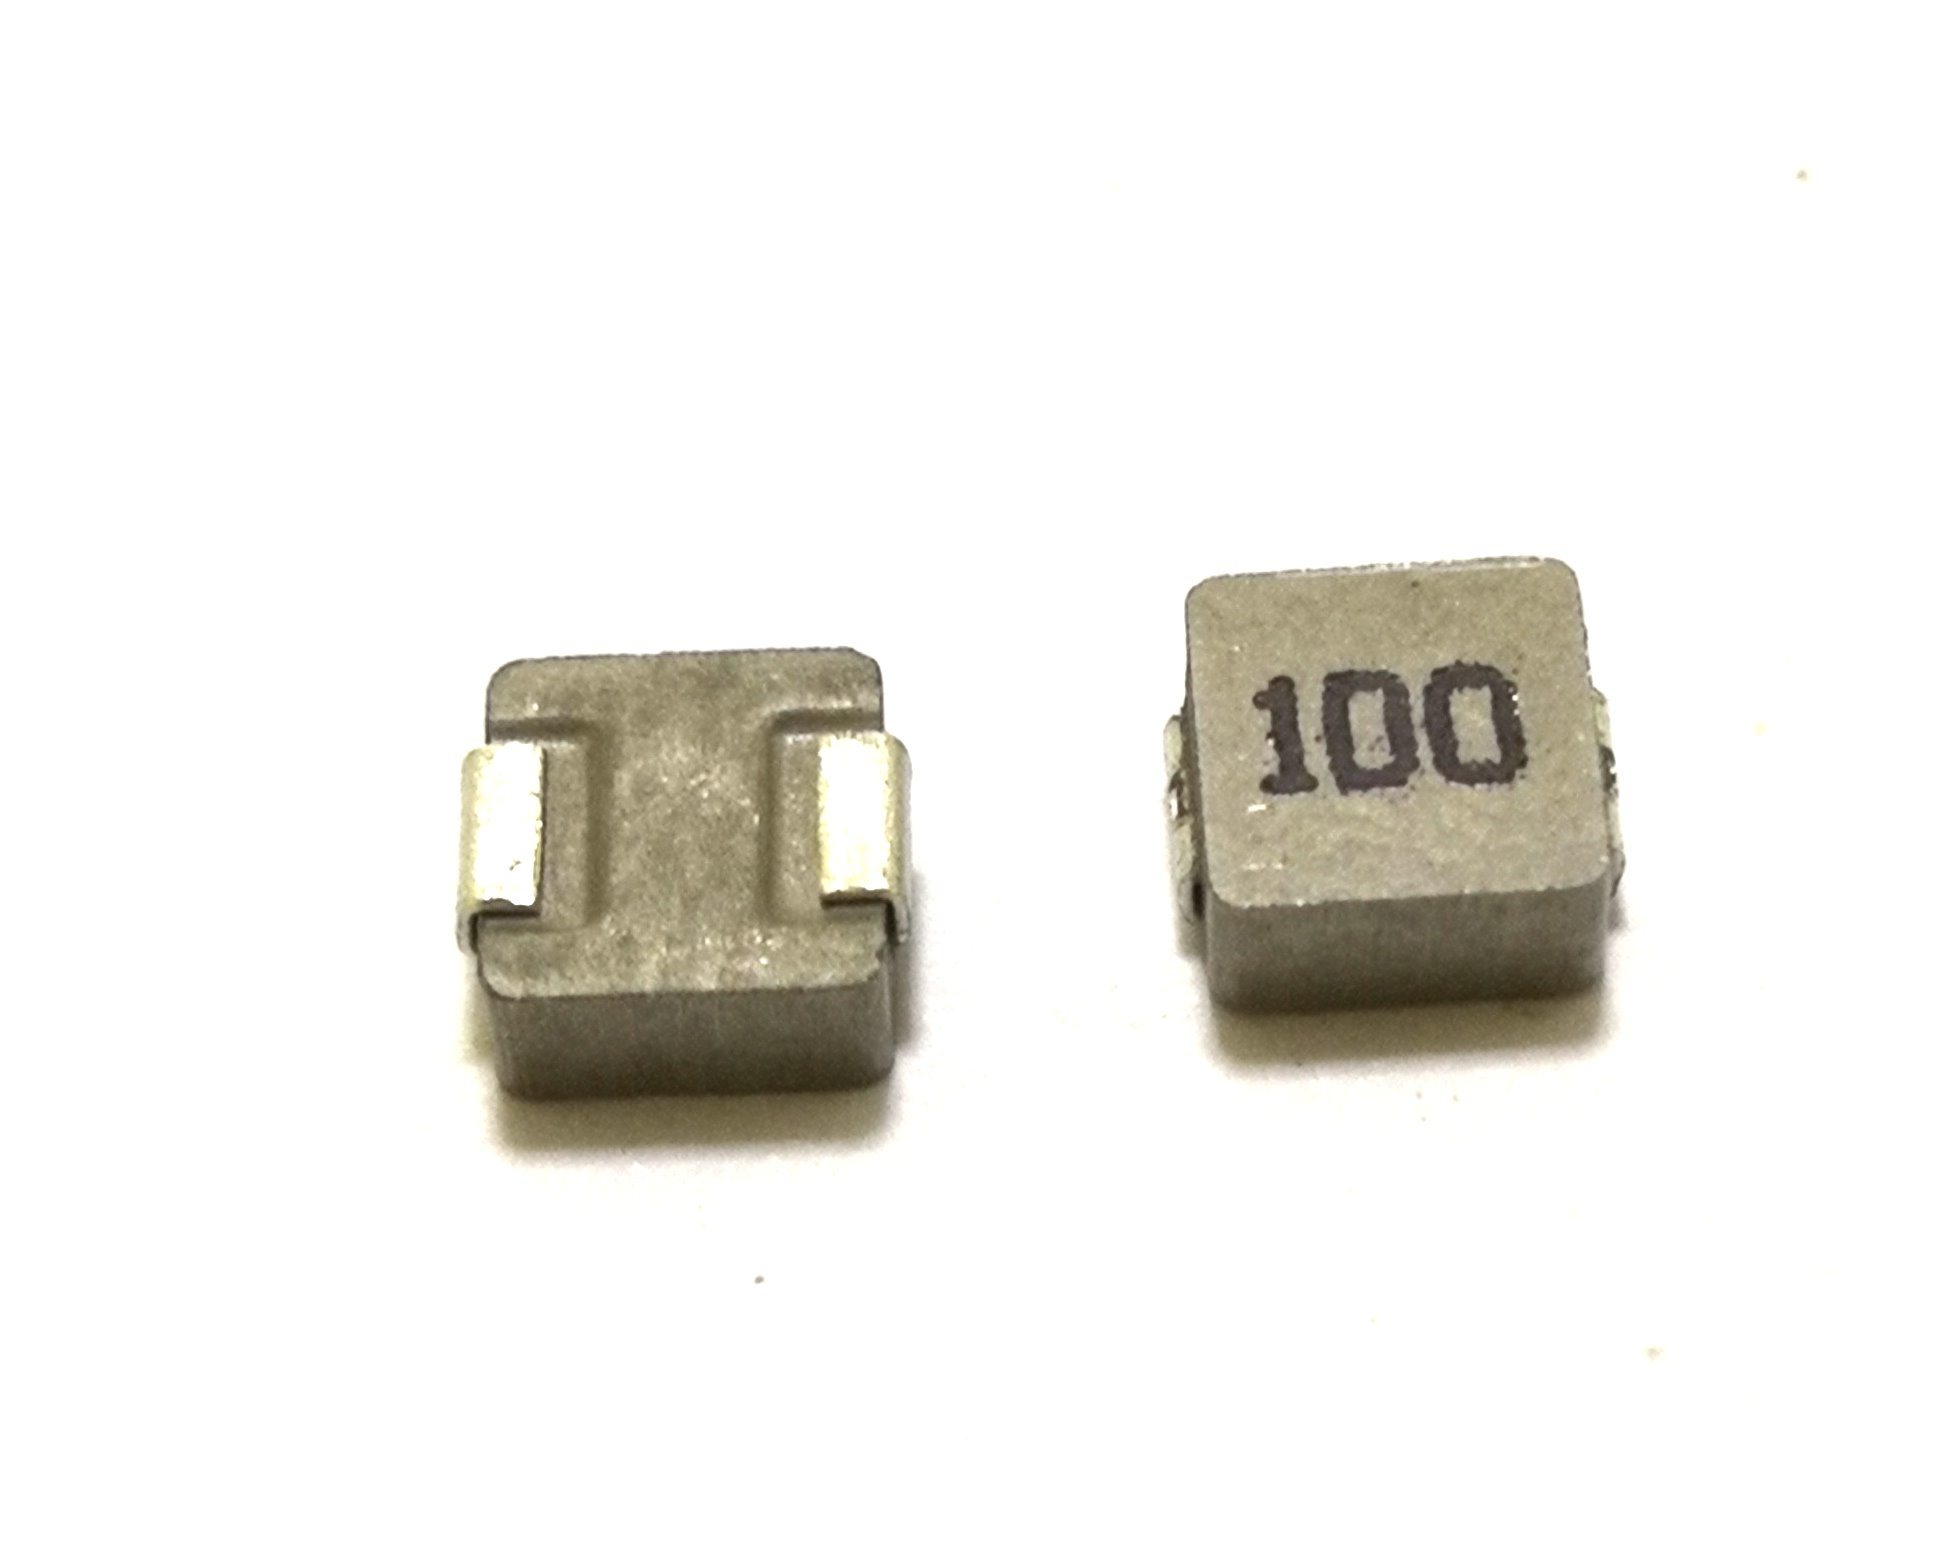 Molding Power Inductor, 100uh, Current: 1.5A for Power Bank & Power Supplier